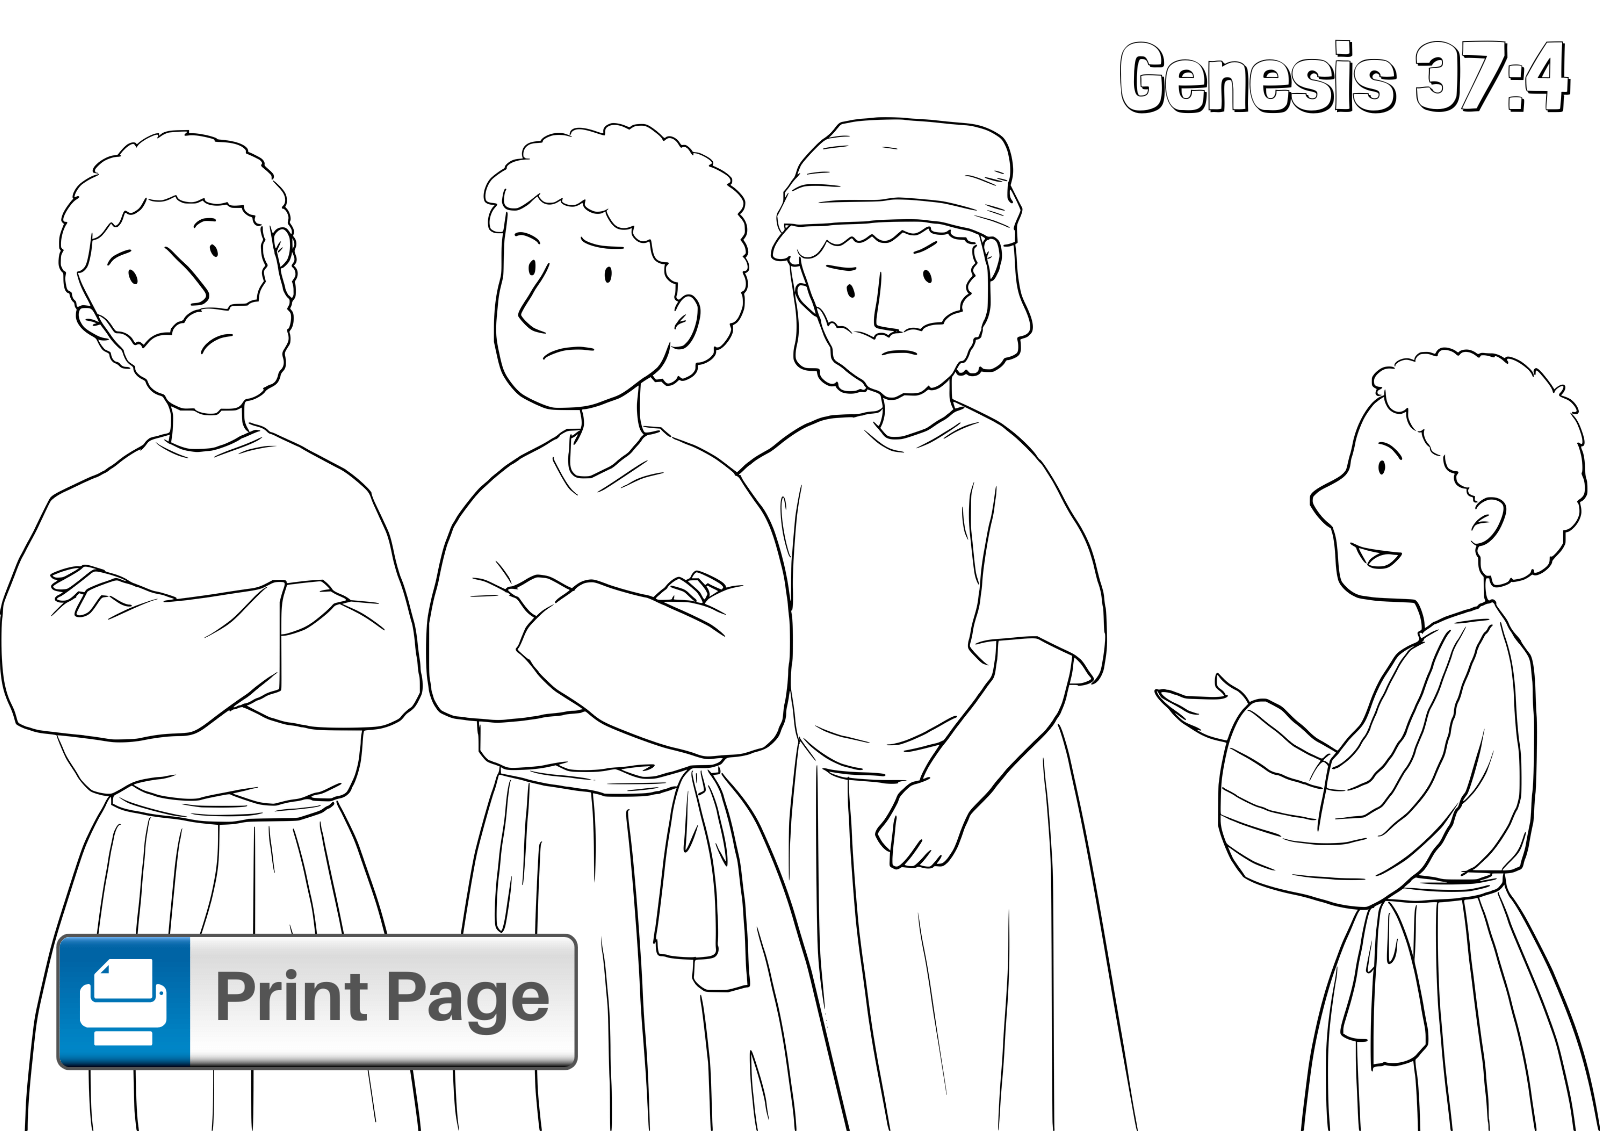 joseph the dreamer coloring pages bible printables old testament bible coloring pages pages joseph dreamer coloring the